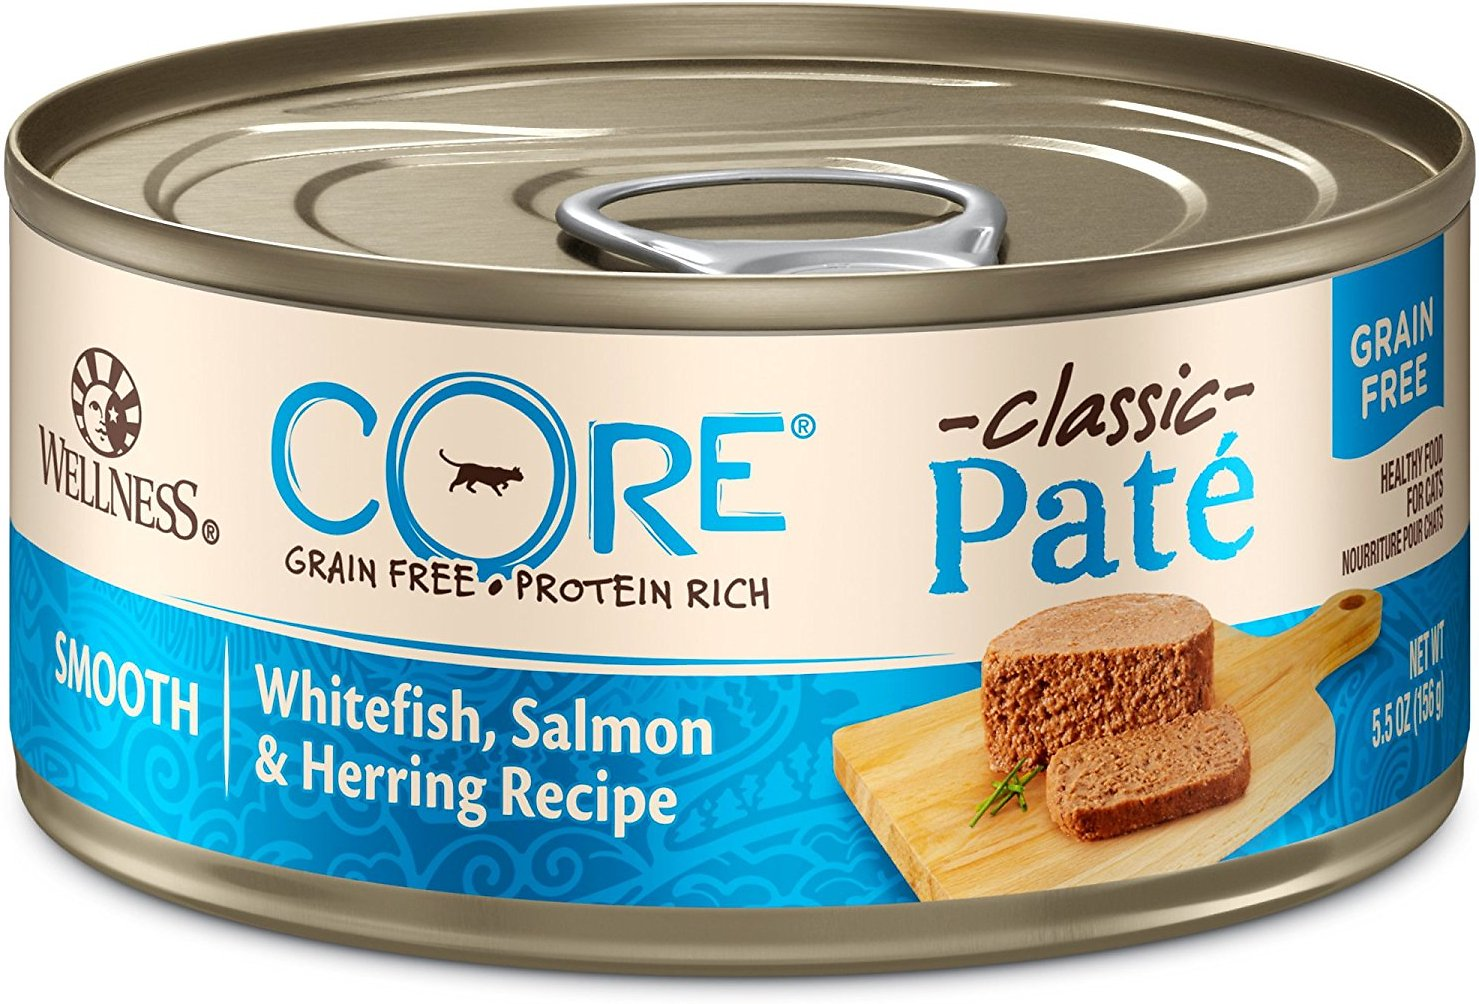 Wellness CORE Grain-Free Salmon, Whitefish & Herring Formula Canned Kitten & Cat Food, 5.5-oz